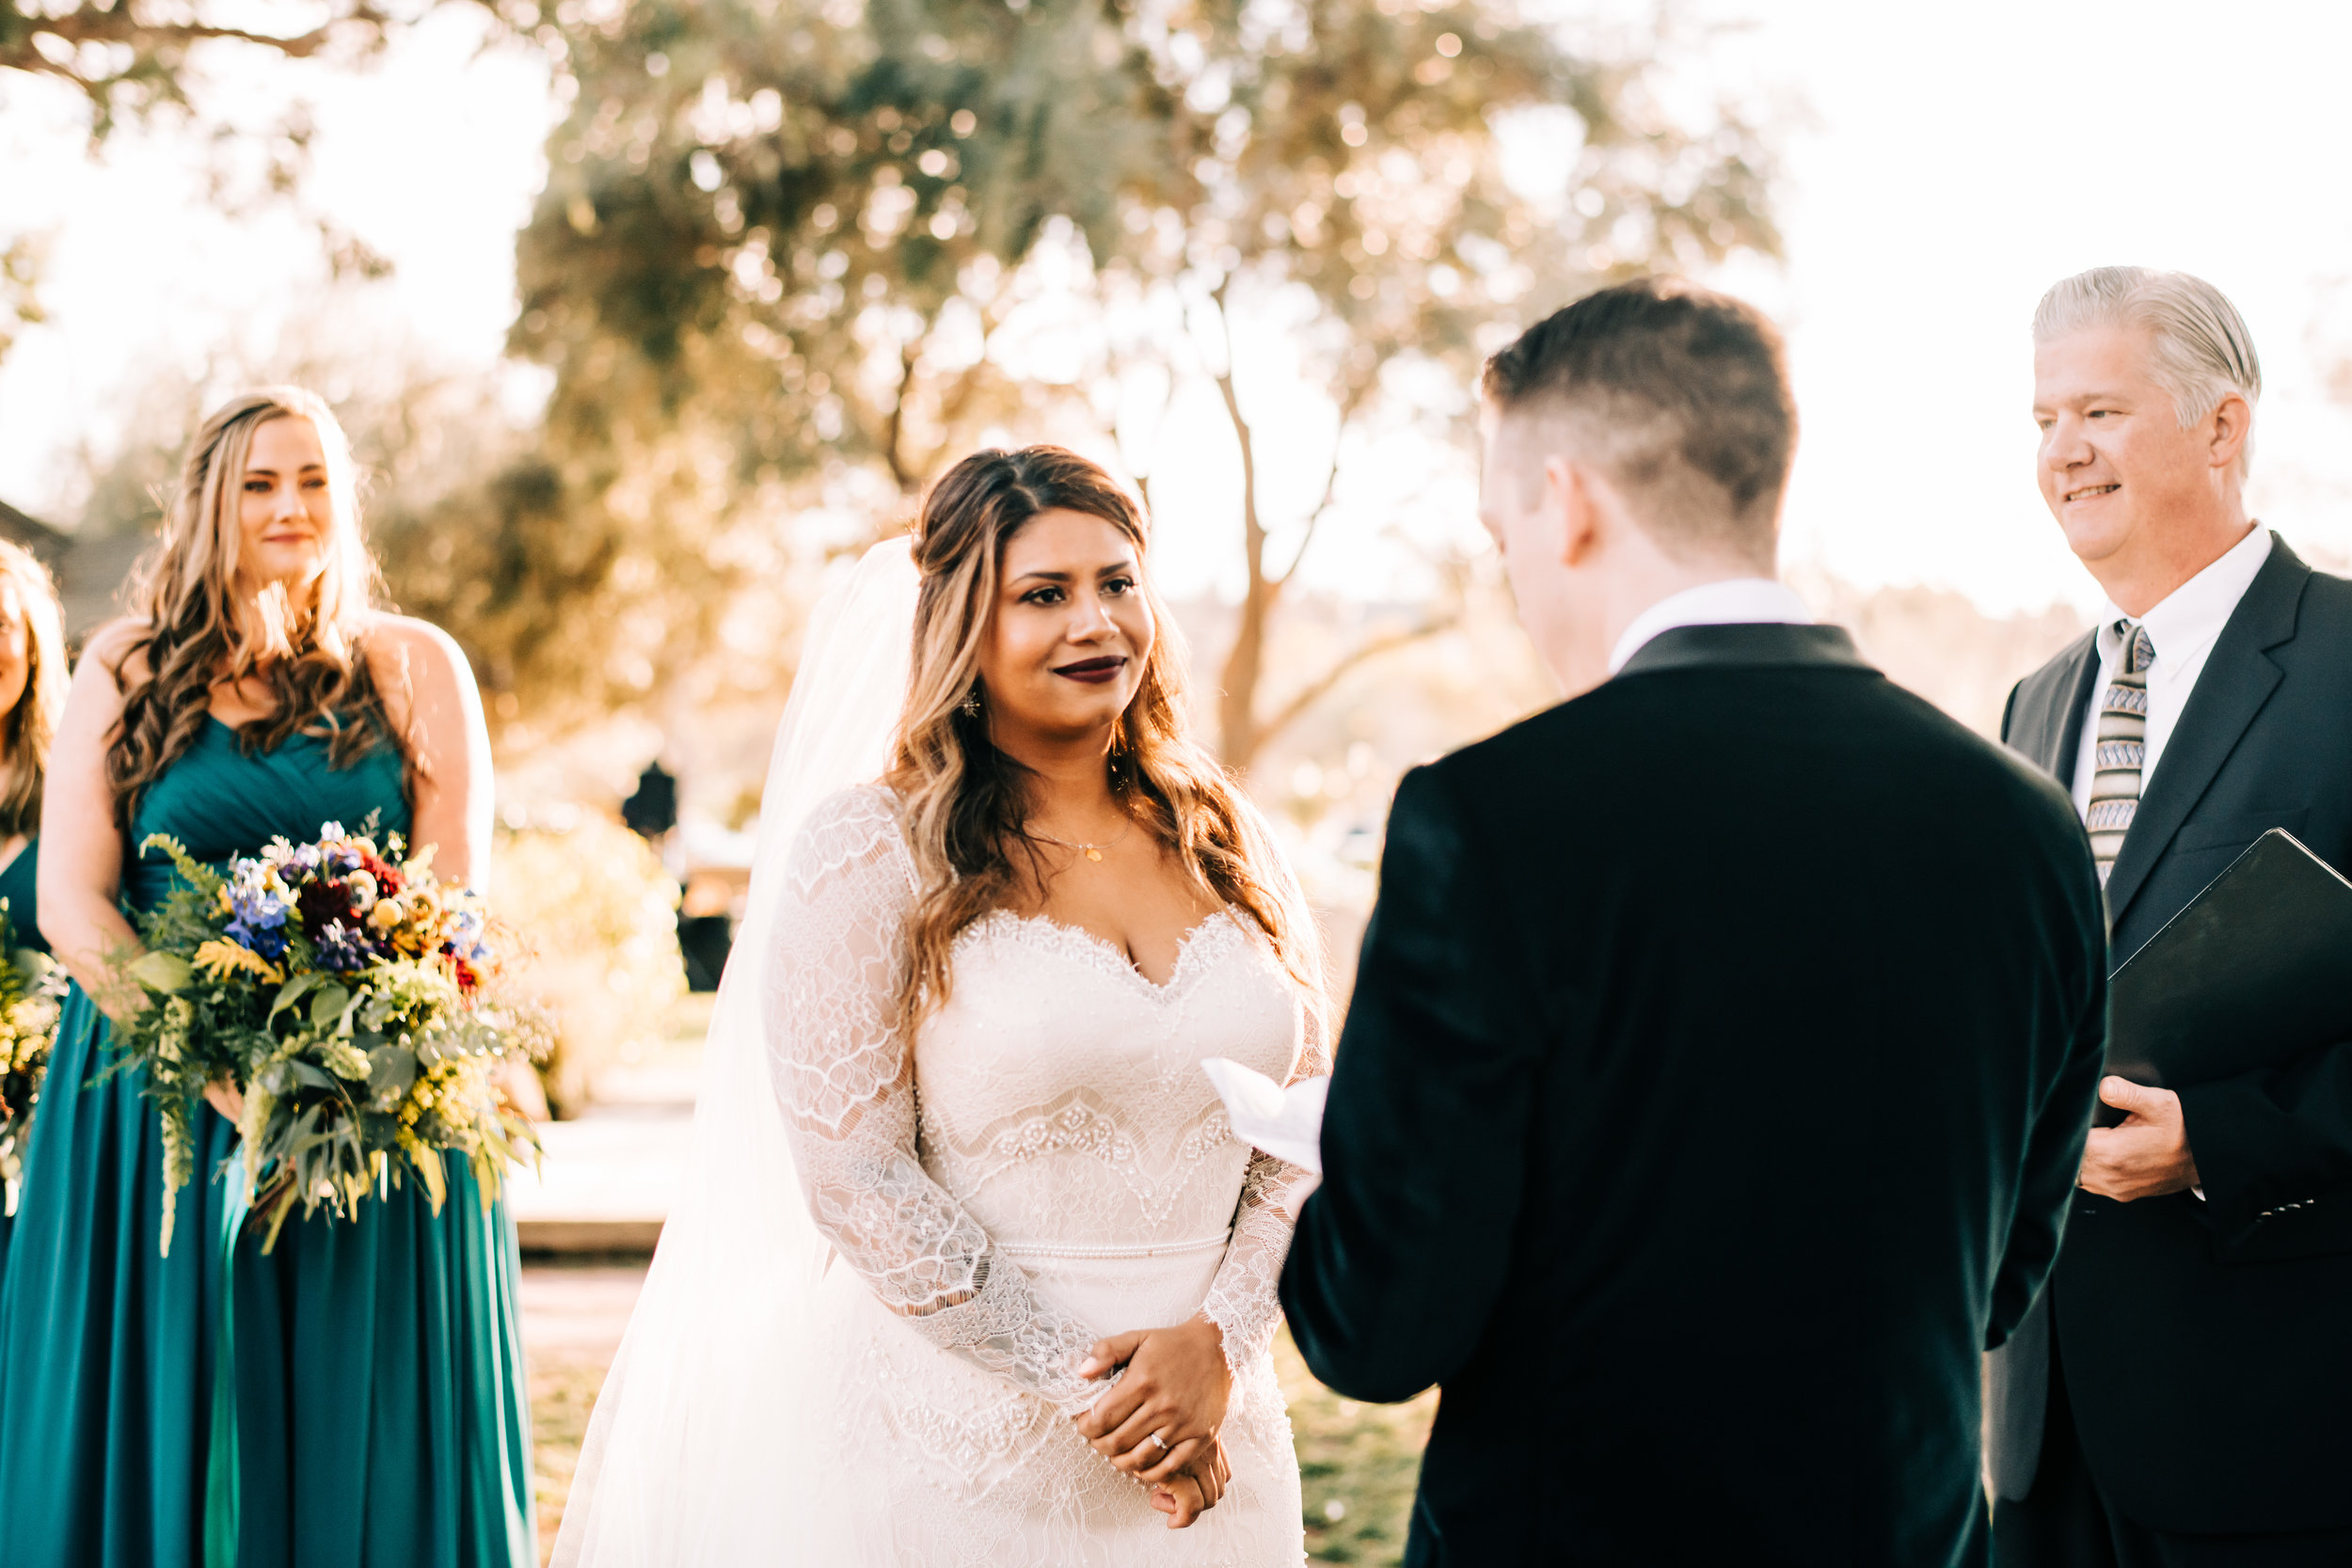 bay area nontraditional wedding photographer southern california boho wedding love light magic san francisco oakland northern california-539.jpg